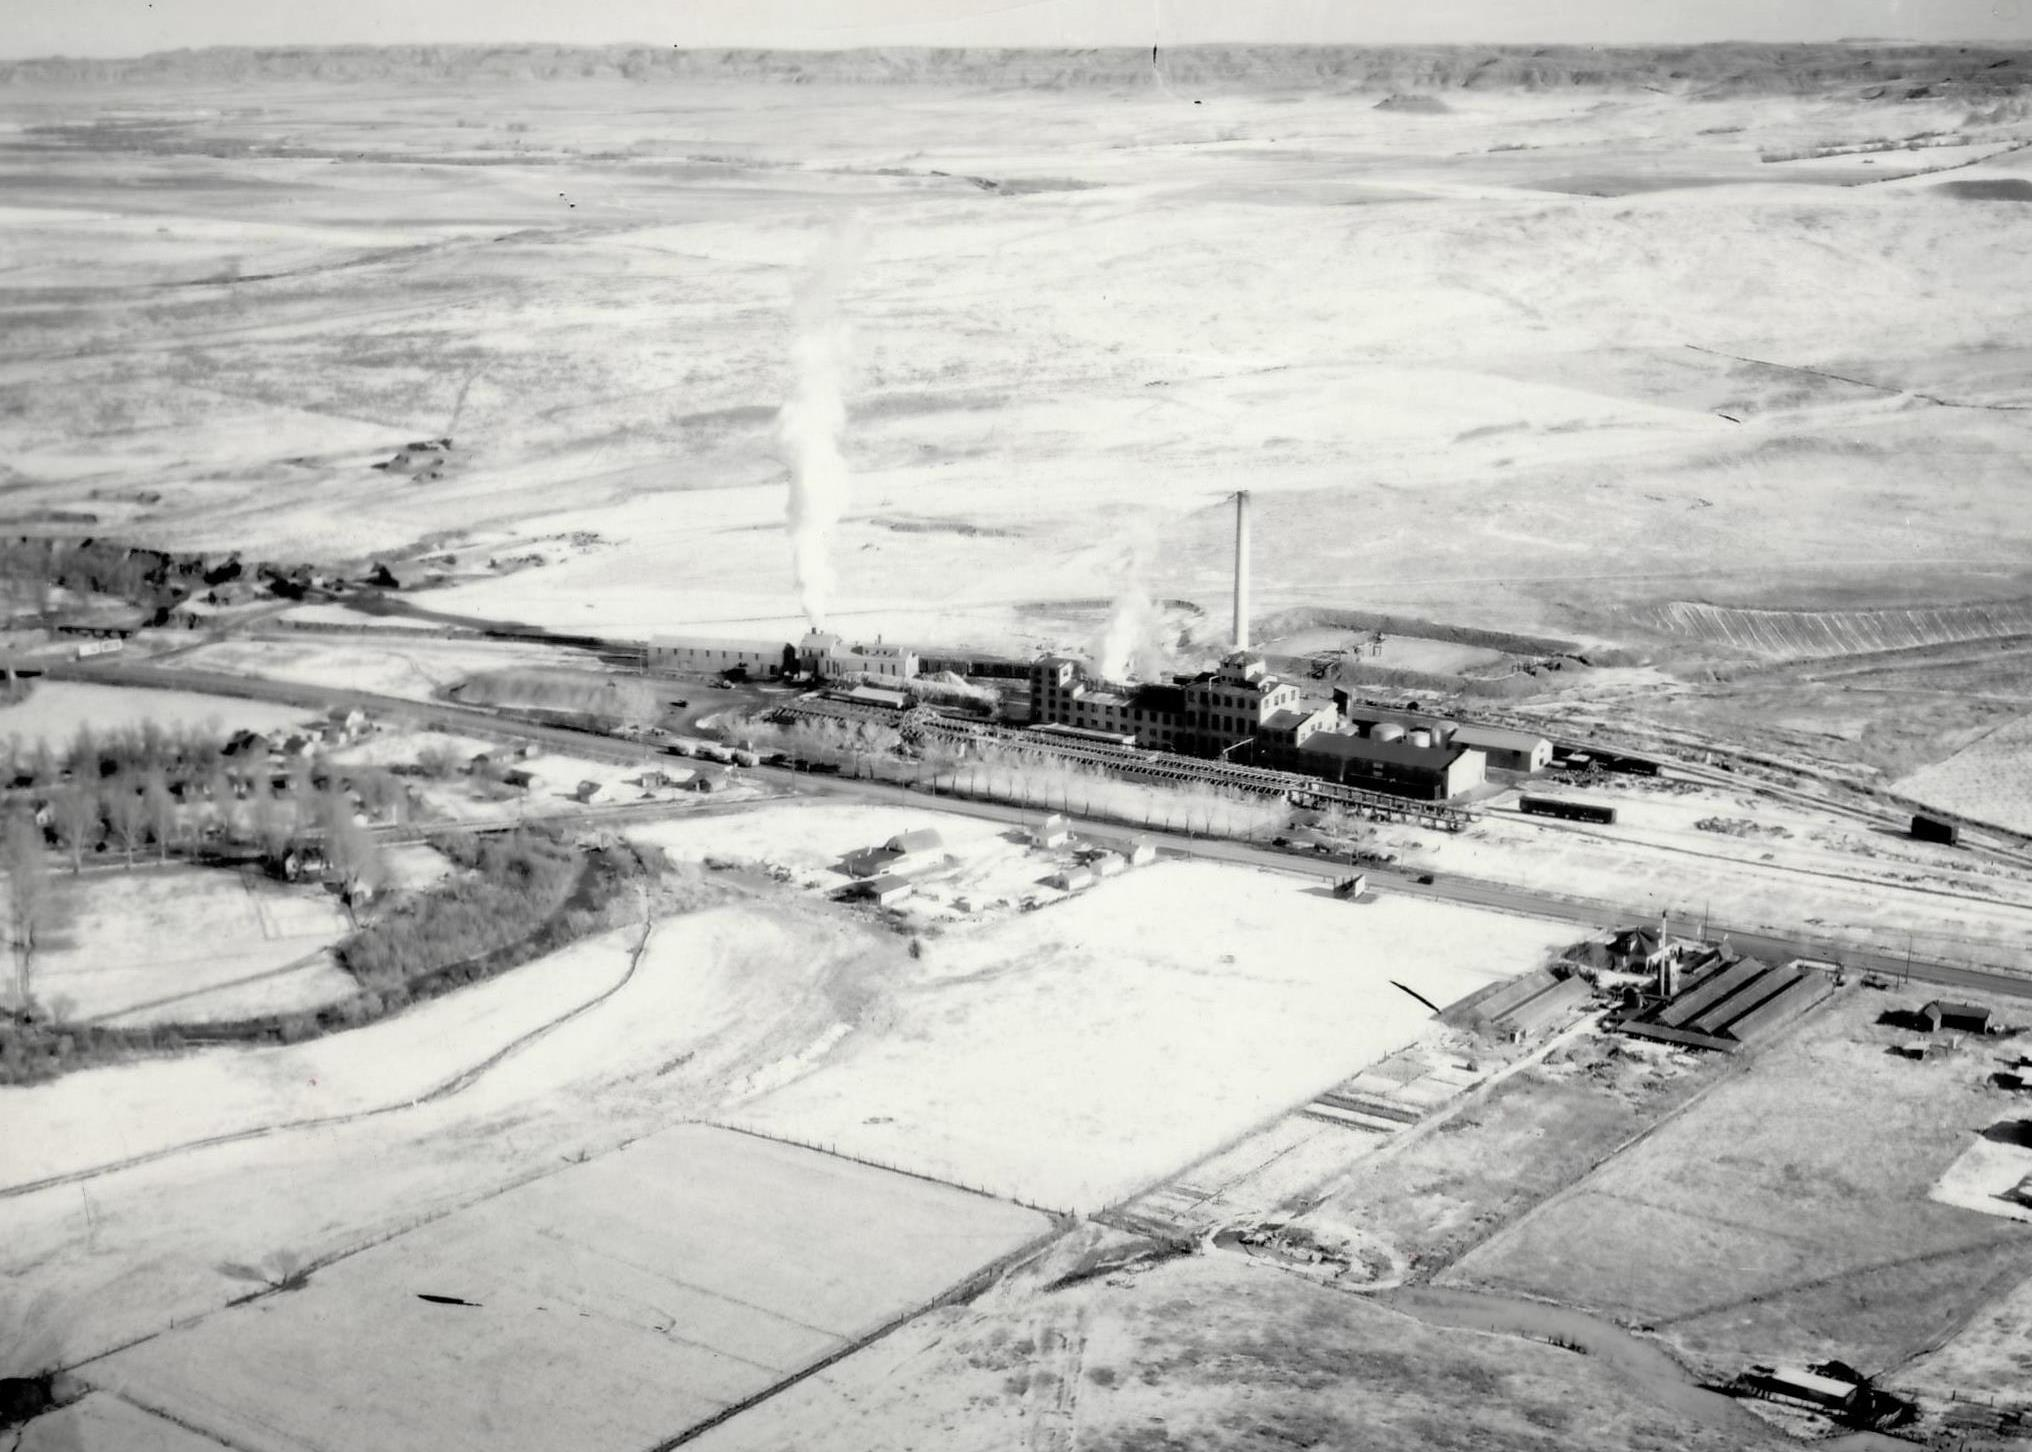 Factory Aerial View